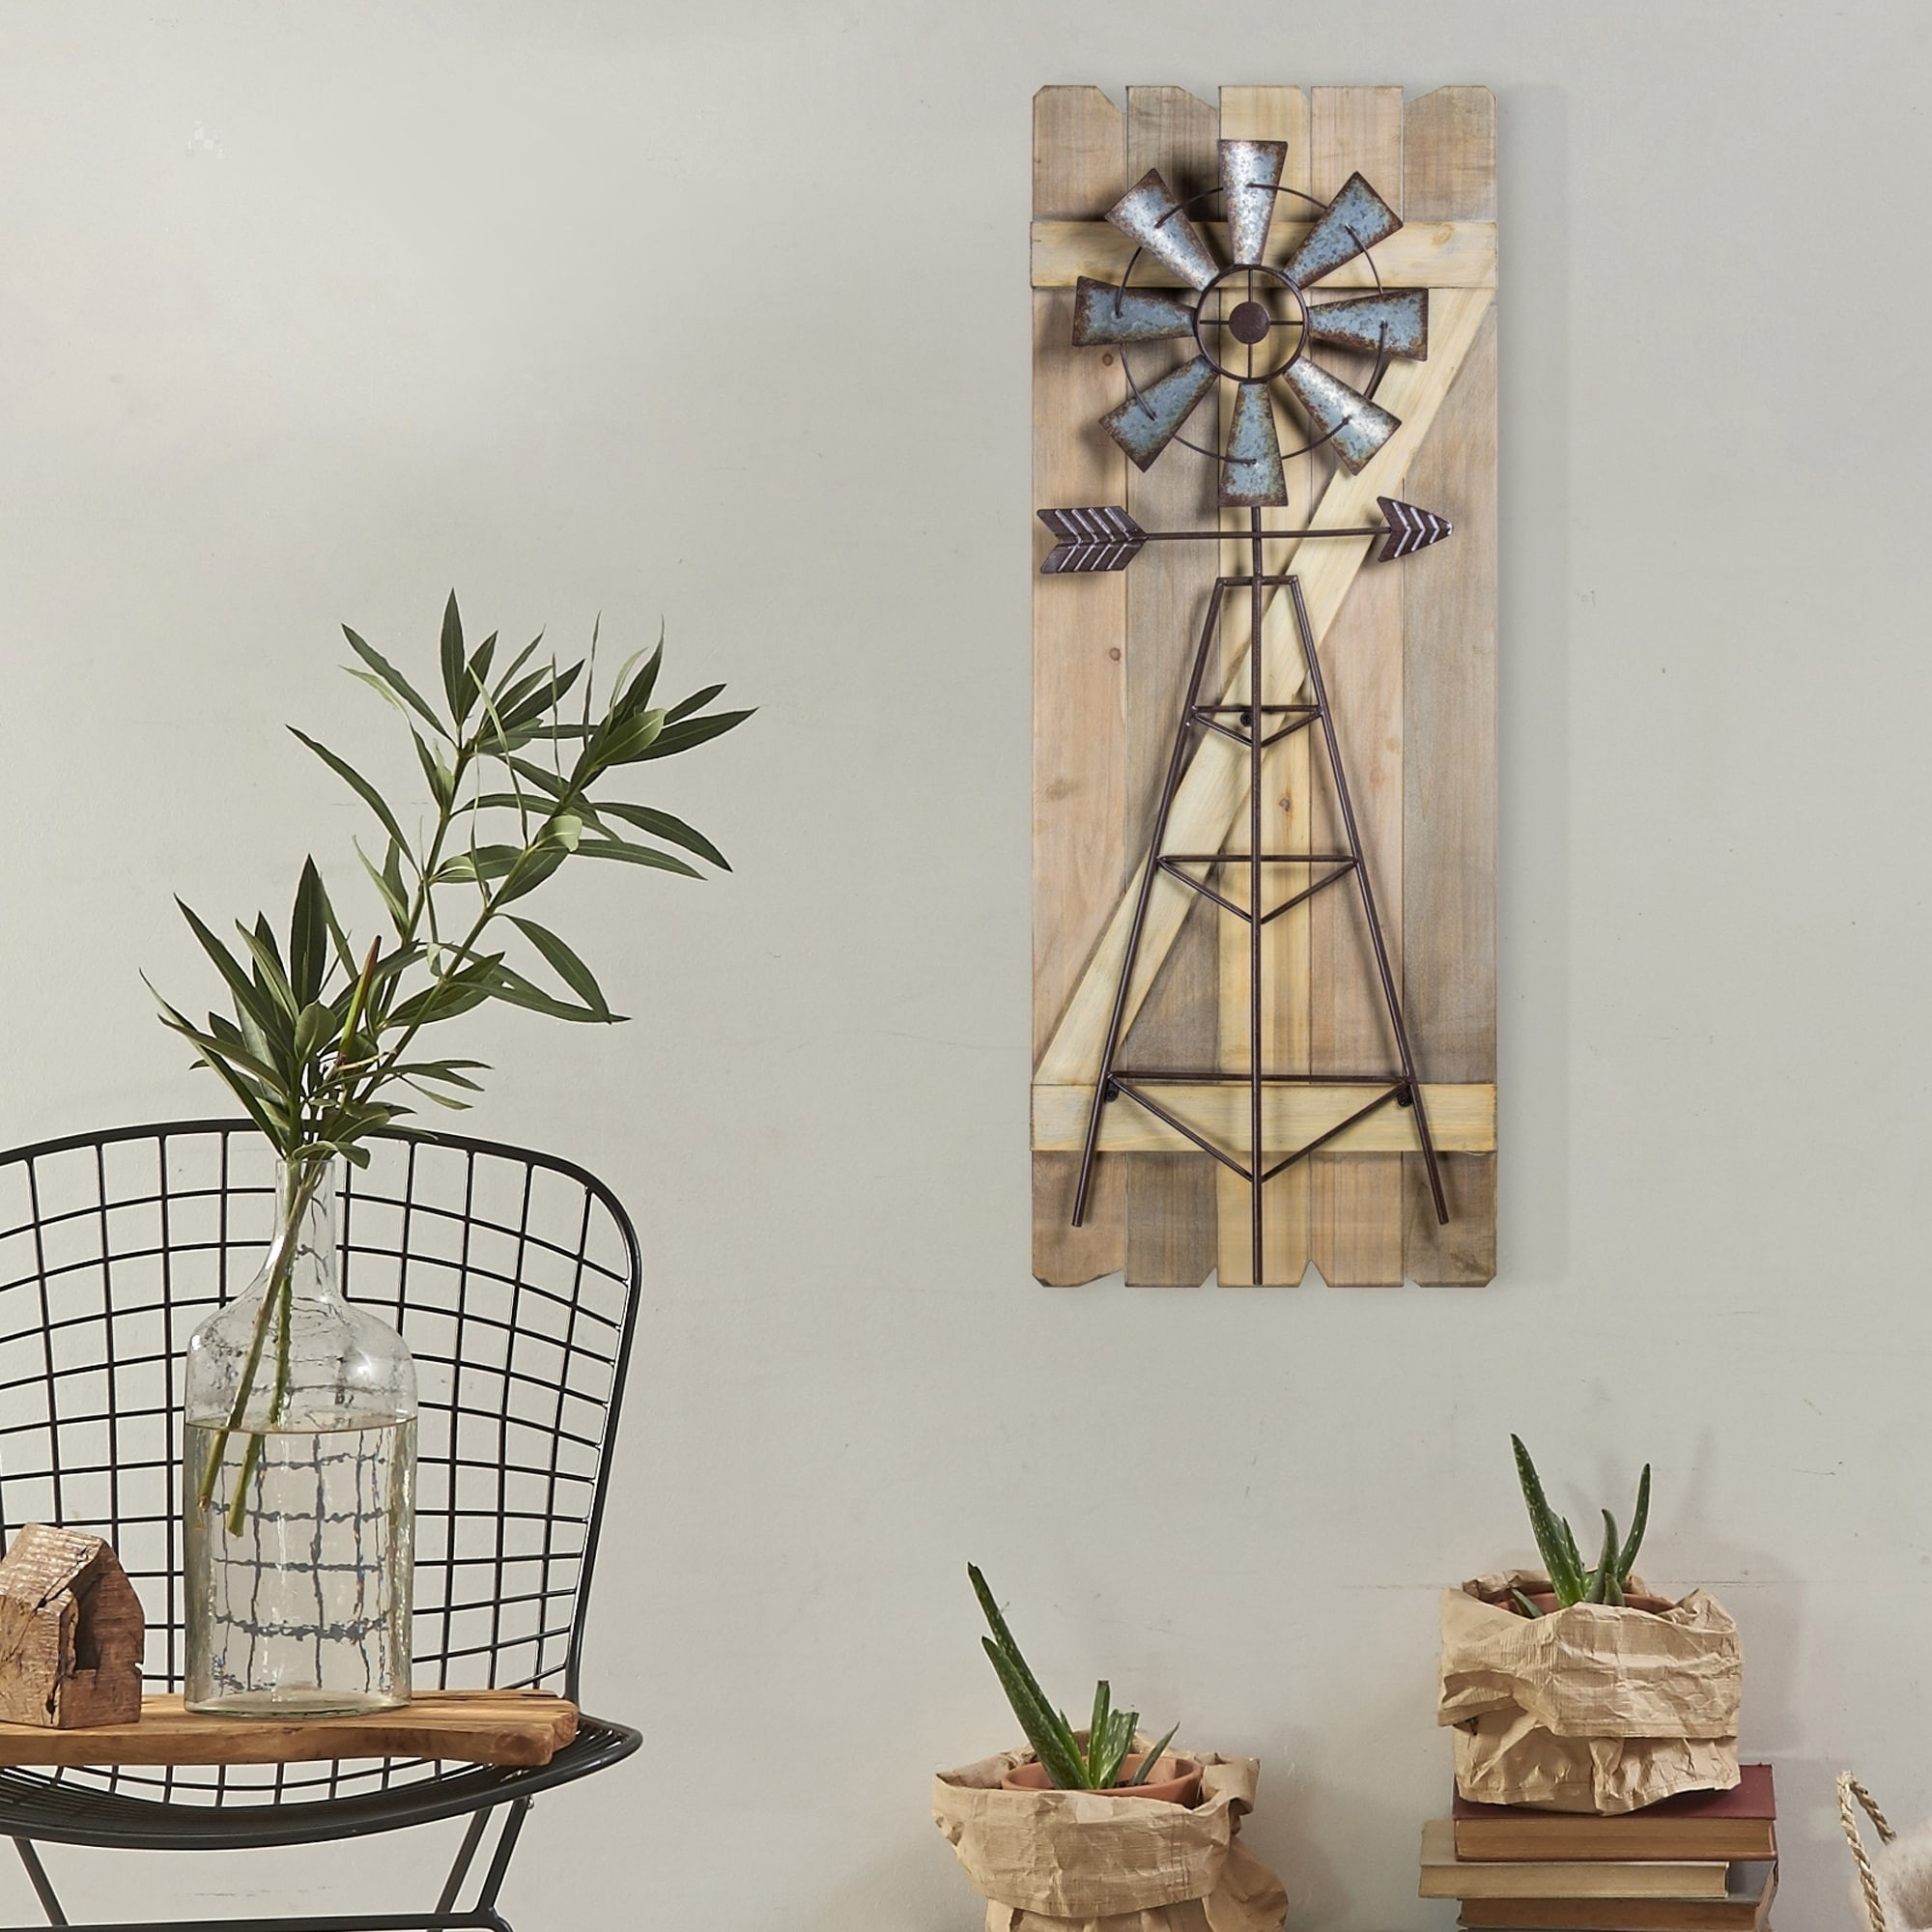 Magnificent Metal Windmill Wall Decor Crest Wall Art Ideas For 2018 Windmill Wall Art (View 12 of 20)